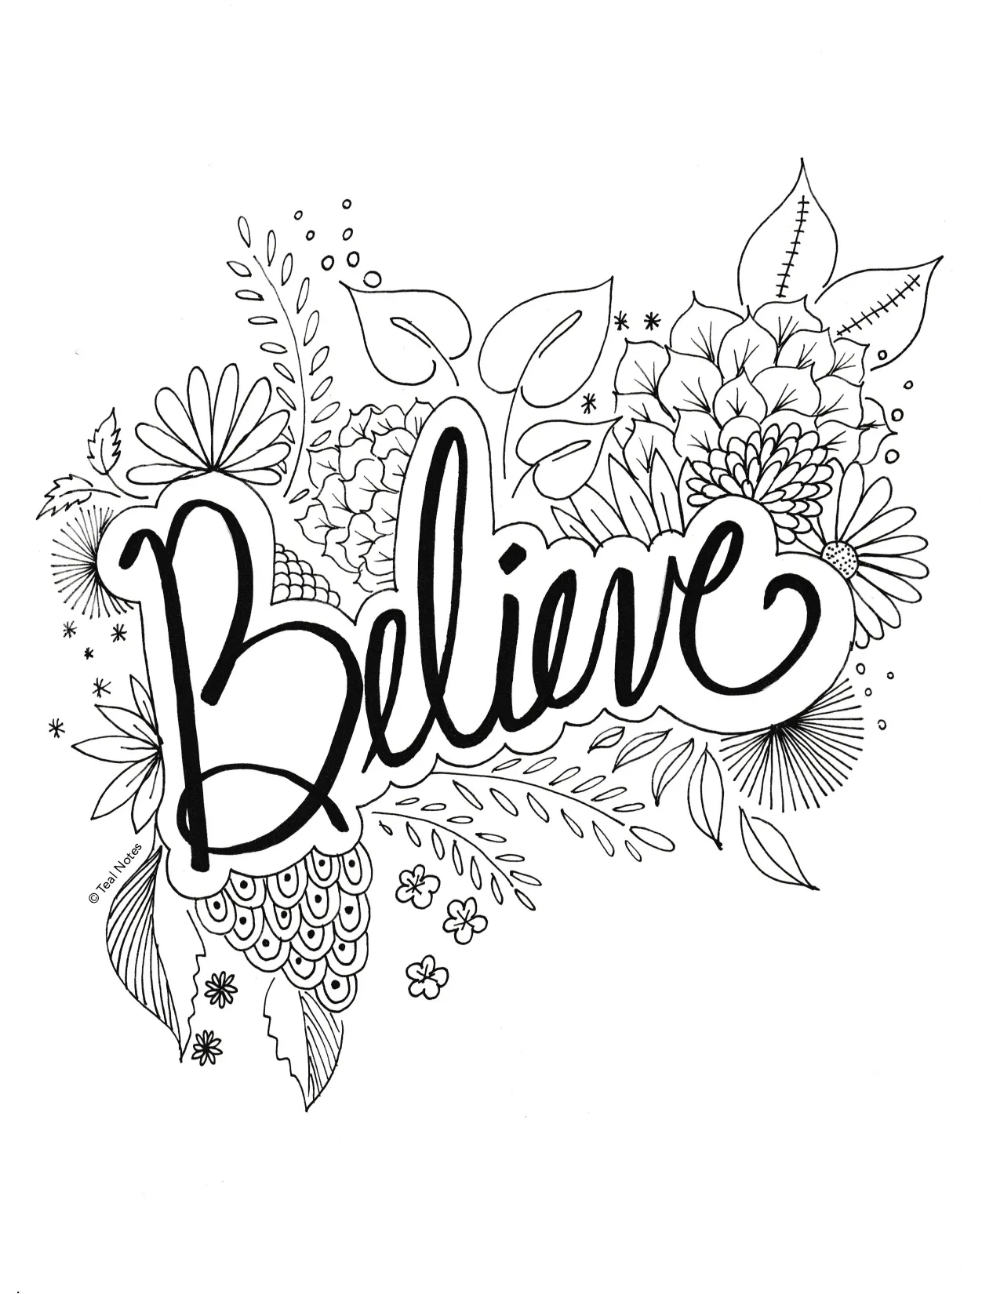 15 Quote Coloring Pages You Can Print And Color On Your Free Time